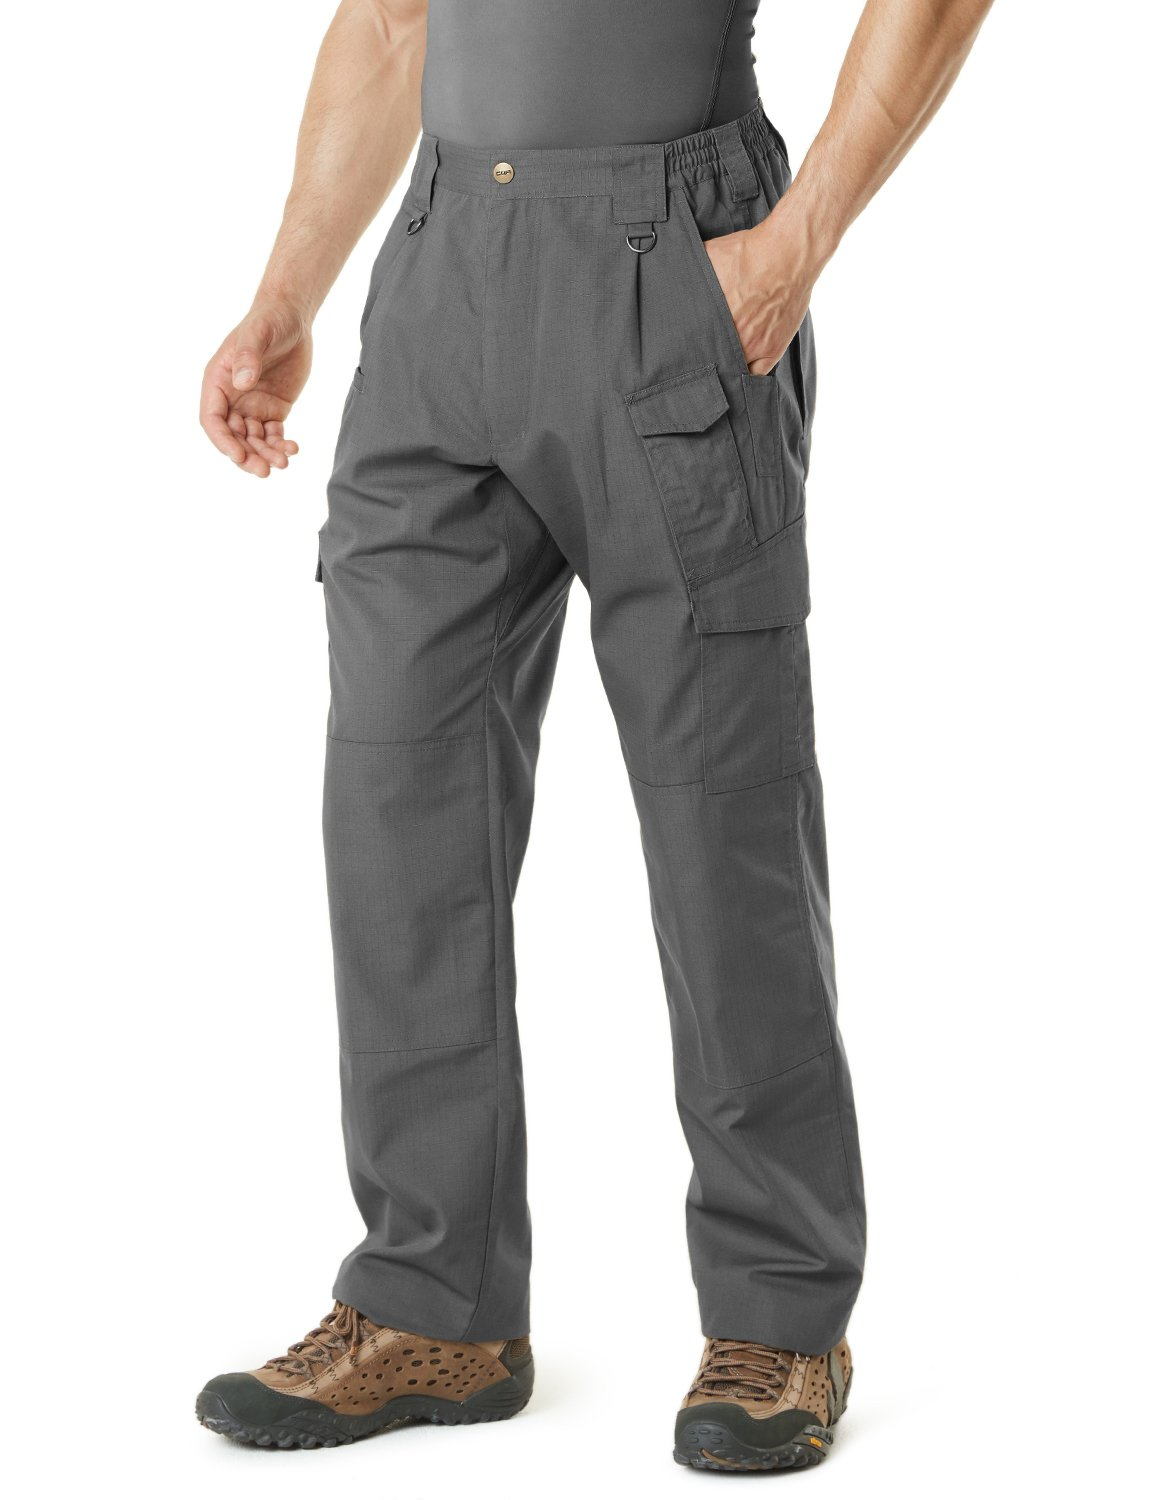 CQR CQ-TLP105-CHC_30W/30L Men's Tactical Pants Lightweight EDC Assault Cargo TLP105